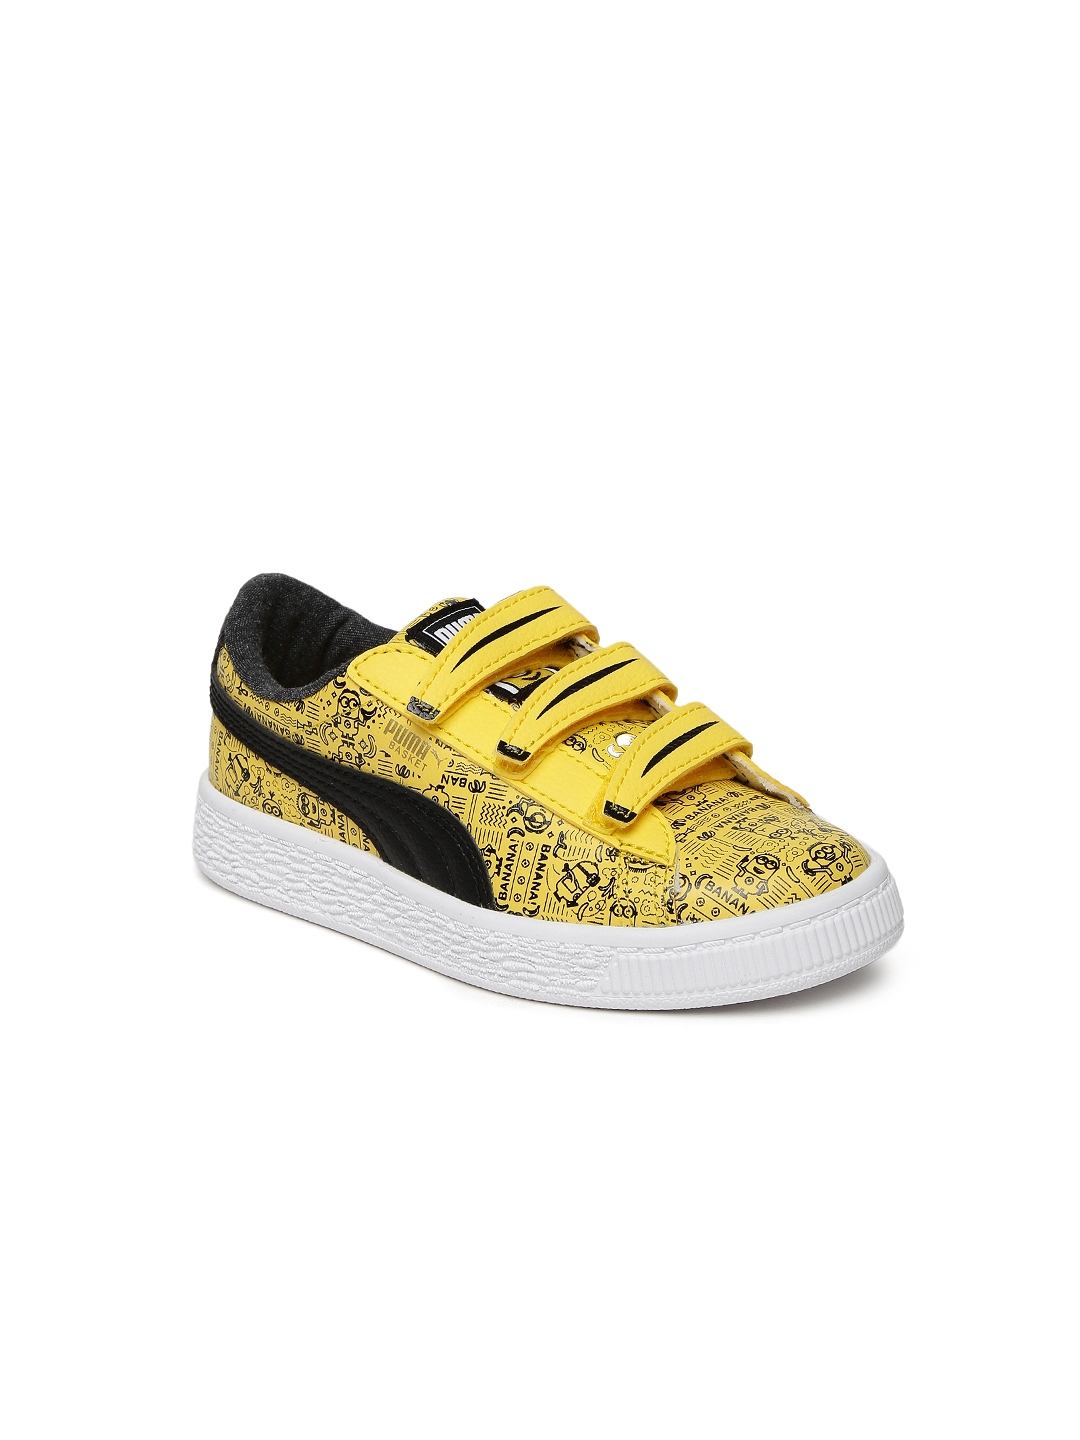 Buy Puma Unisex Yellow Printed Minions Basket V PS Sneakers - Casual ... d999e3a1d